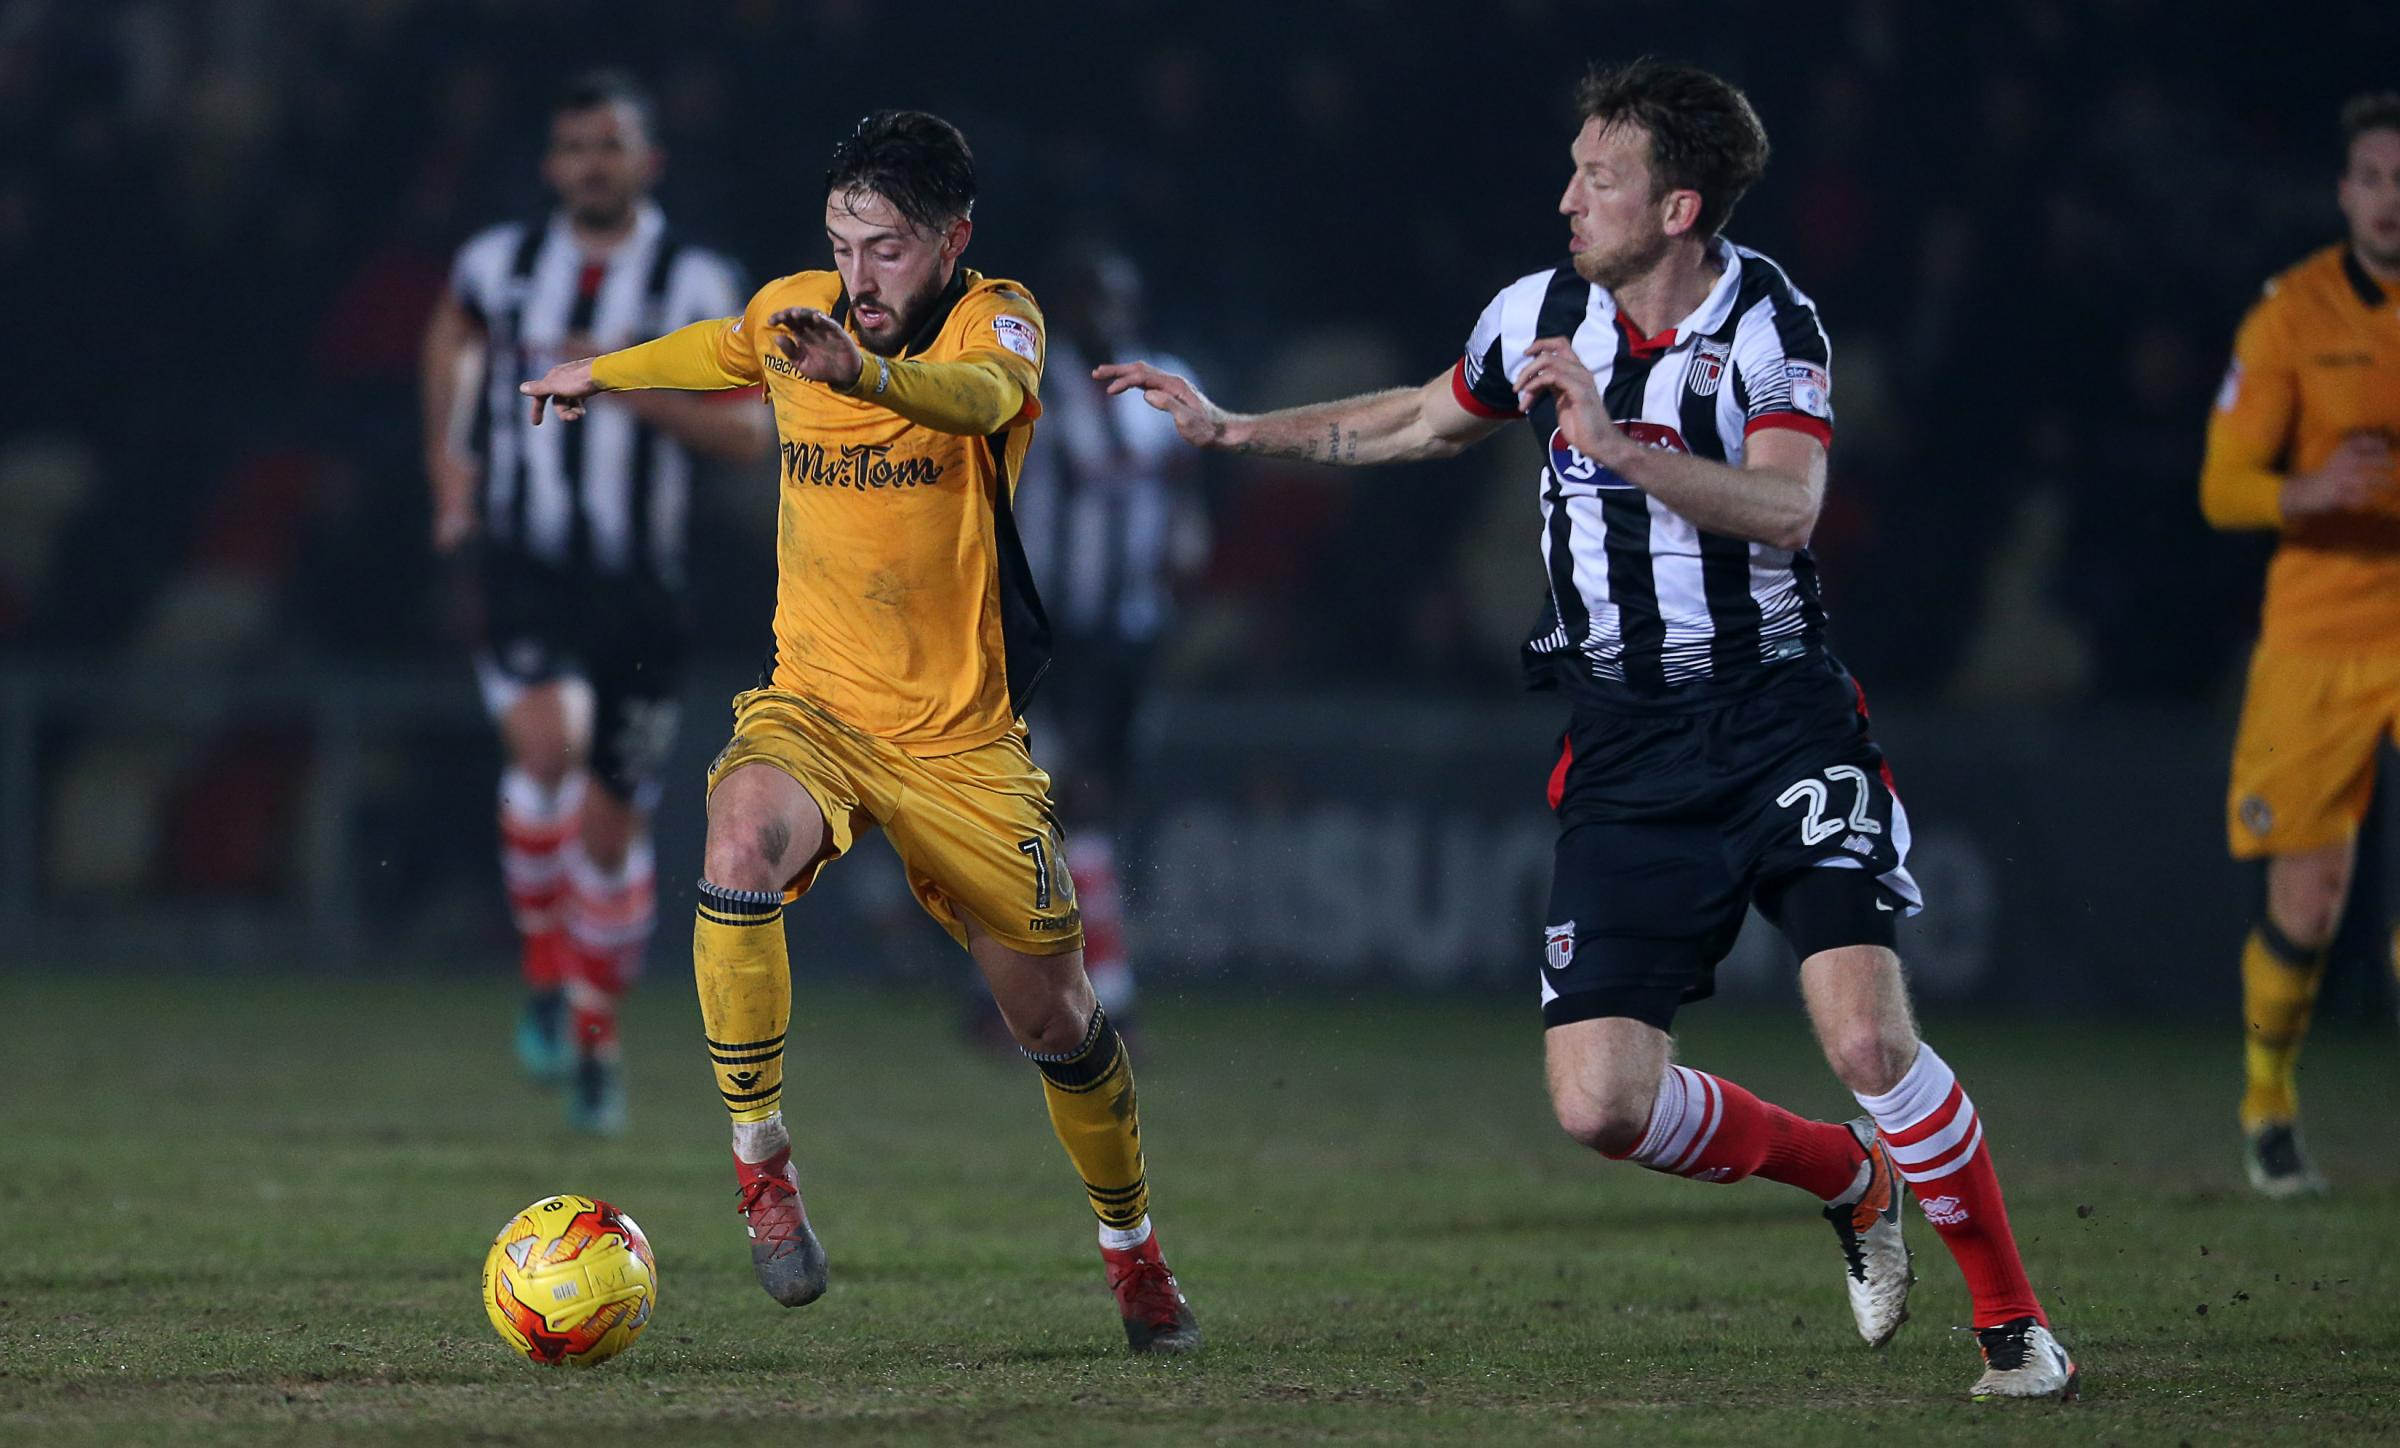 FLASHBACK: Josh Sheehan in action for Newport County against Grimsby Town last season